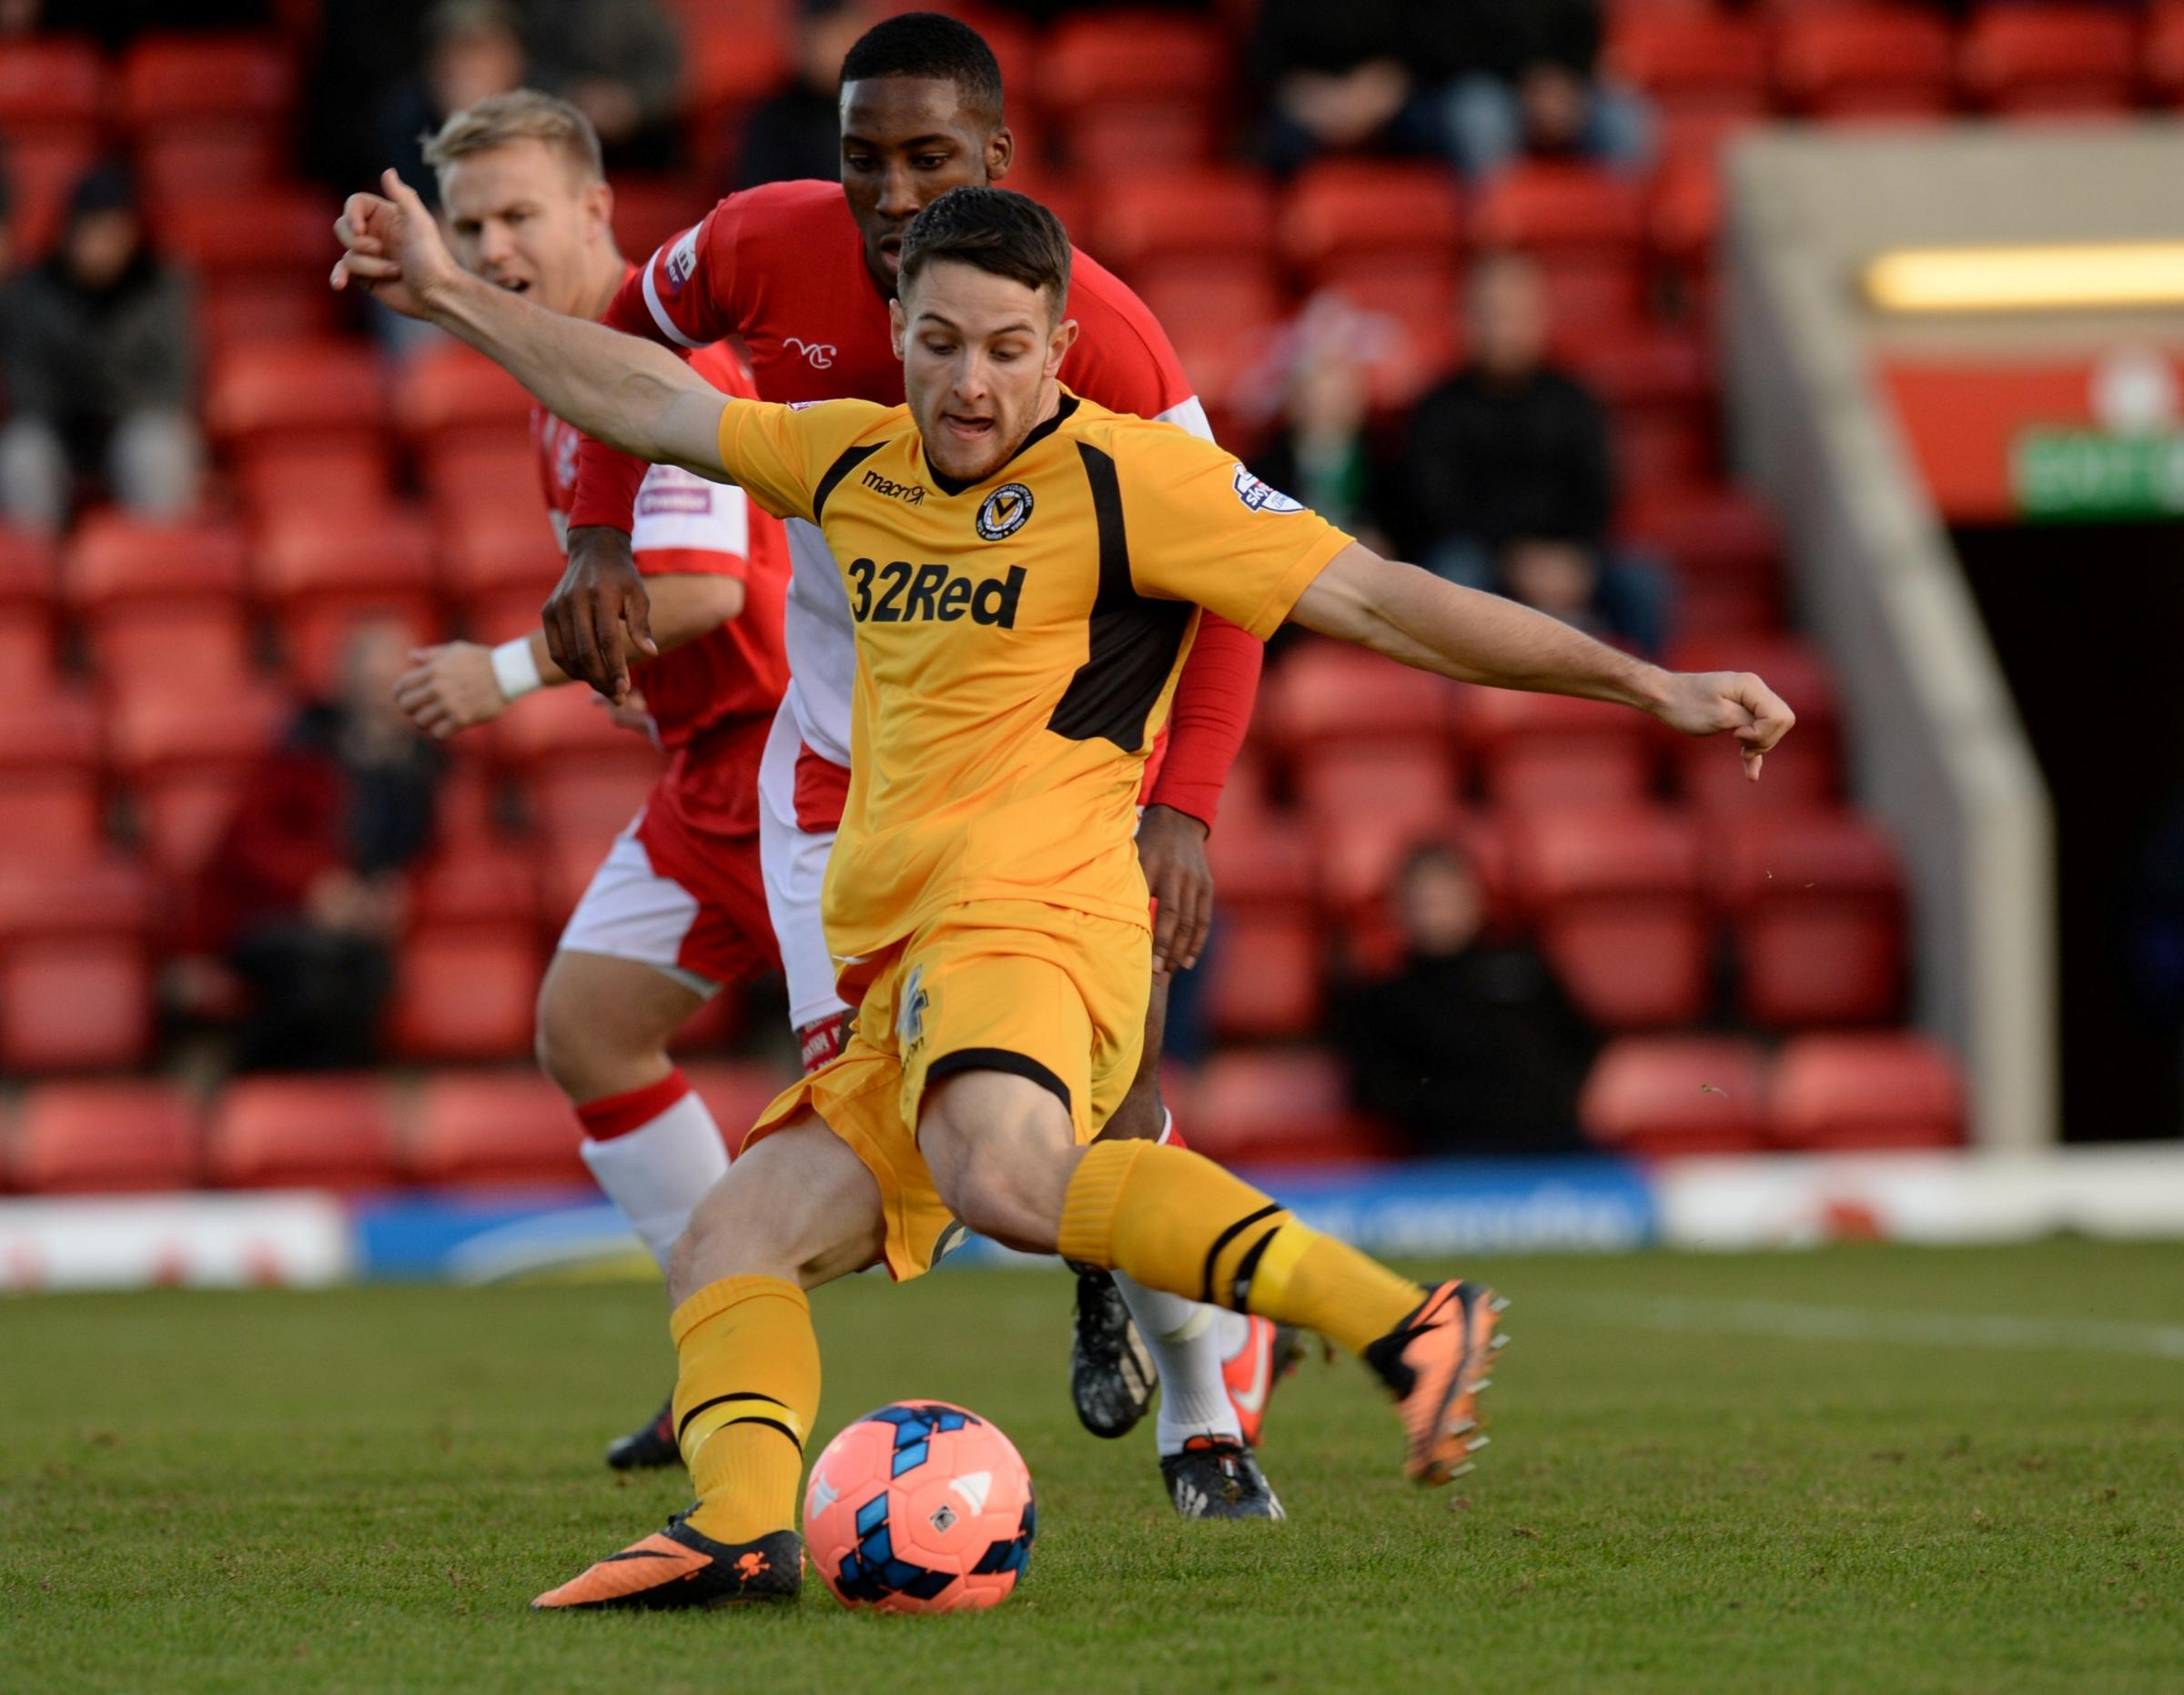 BAD DEAL: County should have held on to Conor Washington, says Len Ashurst